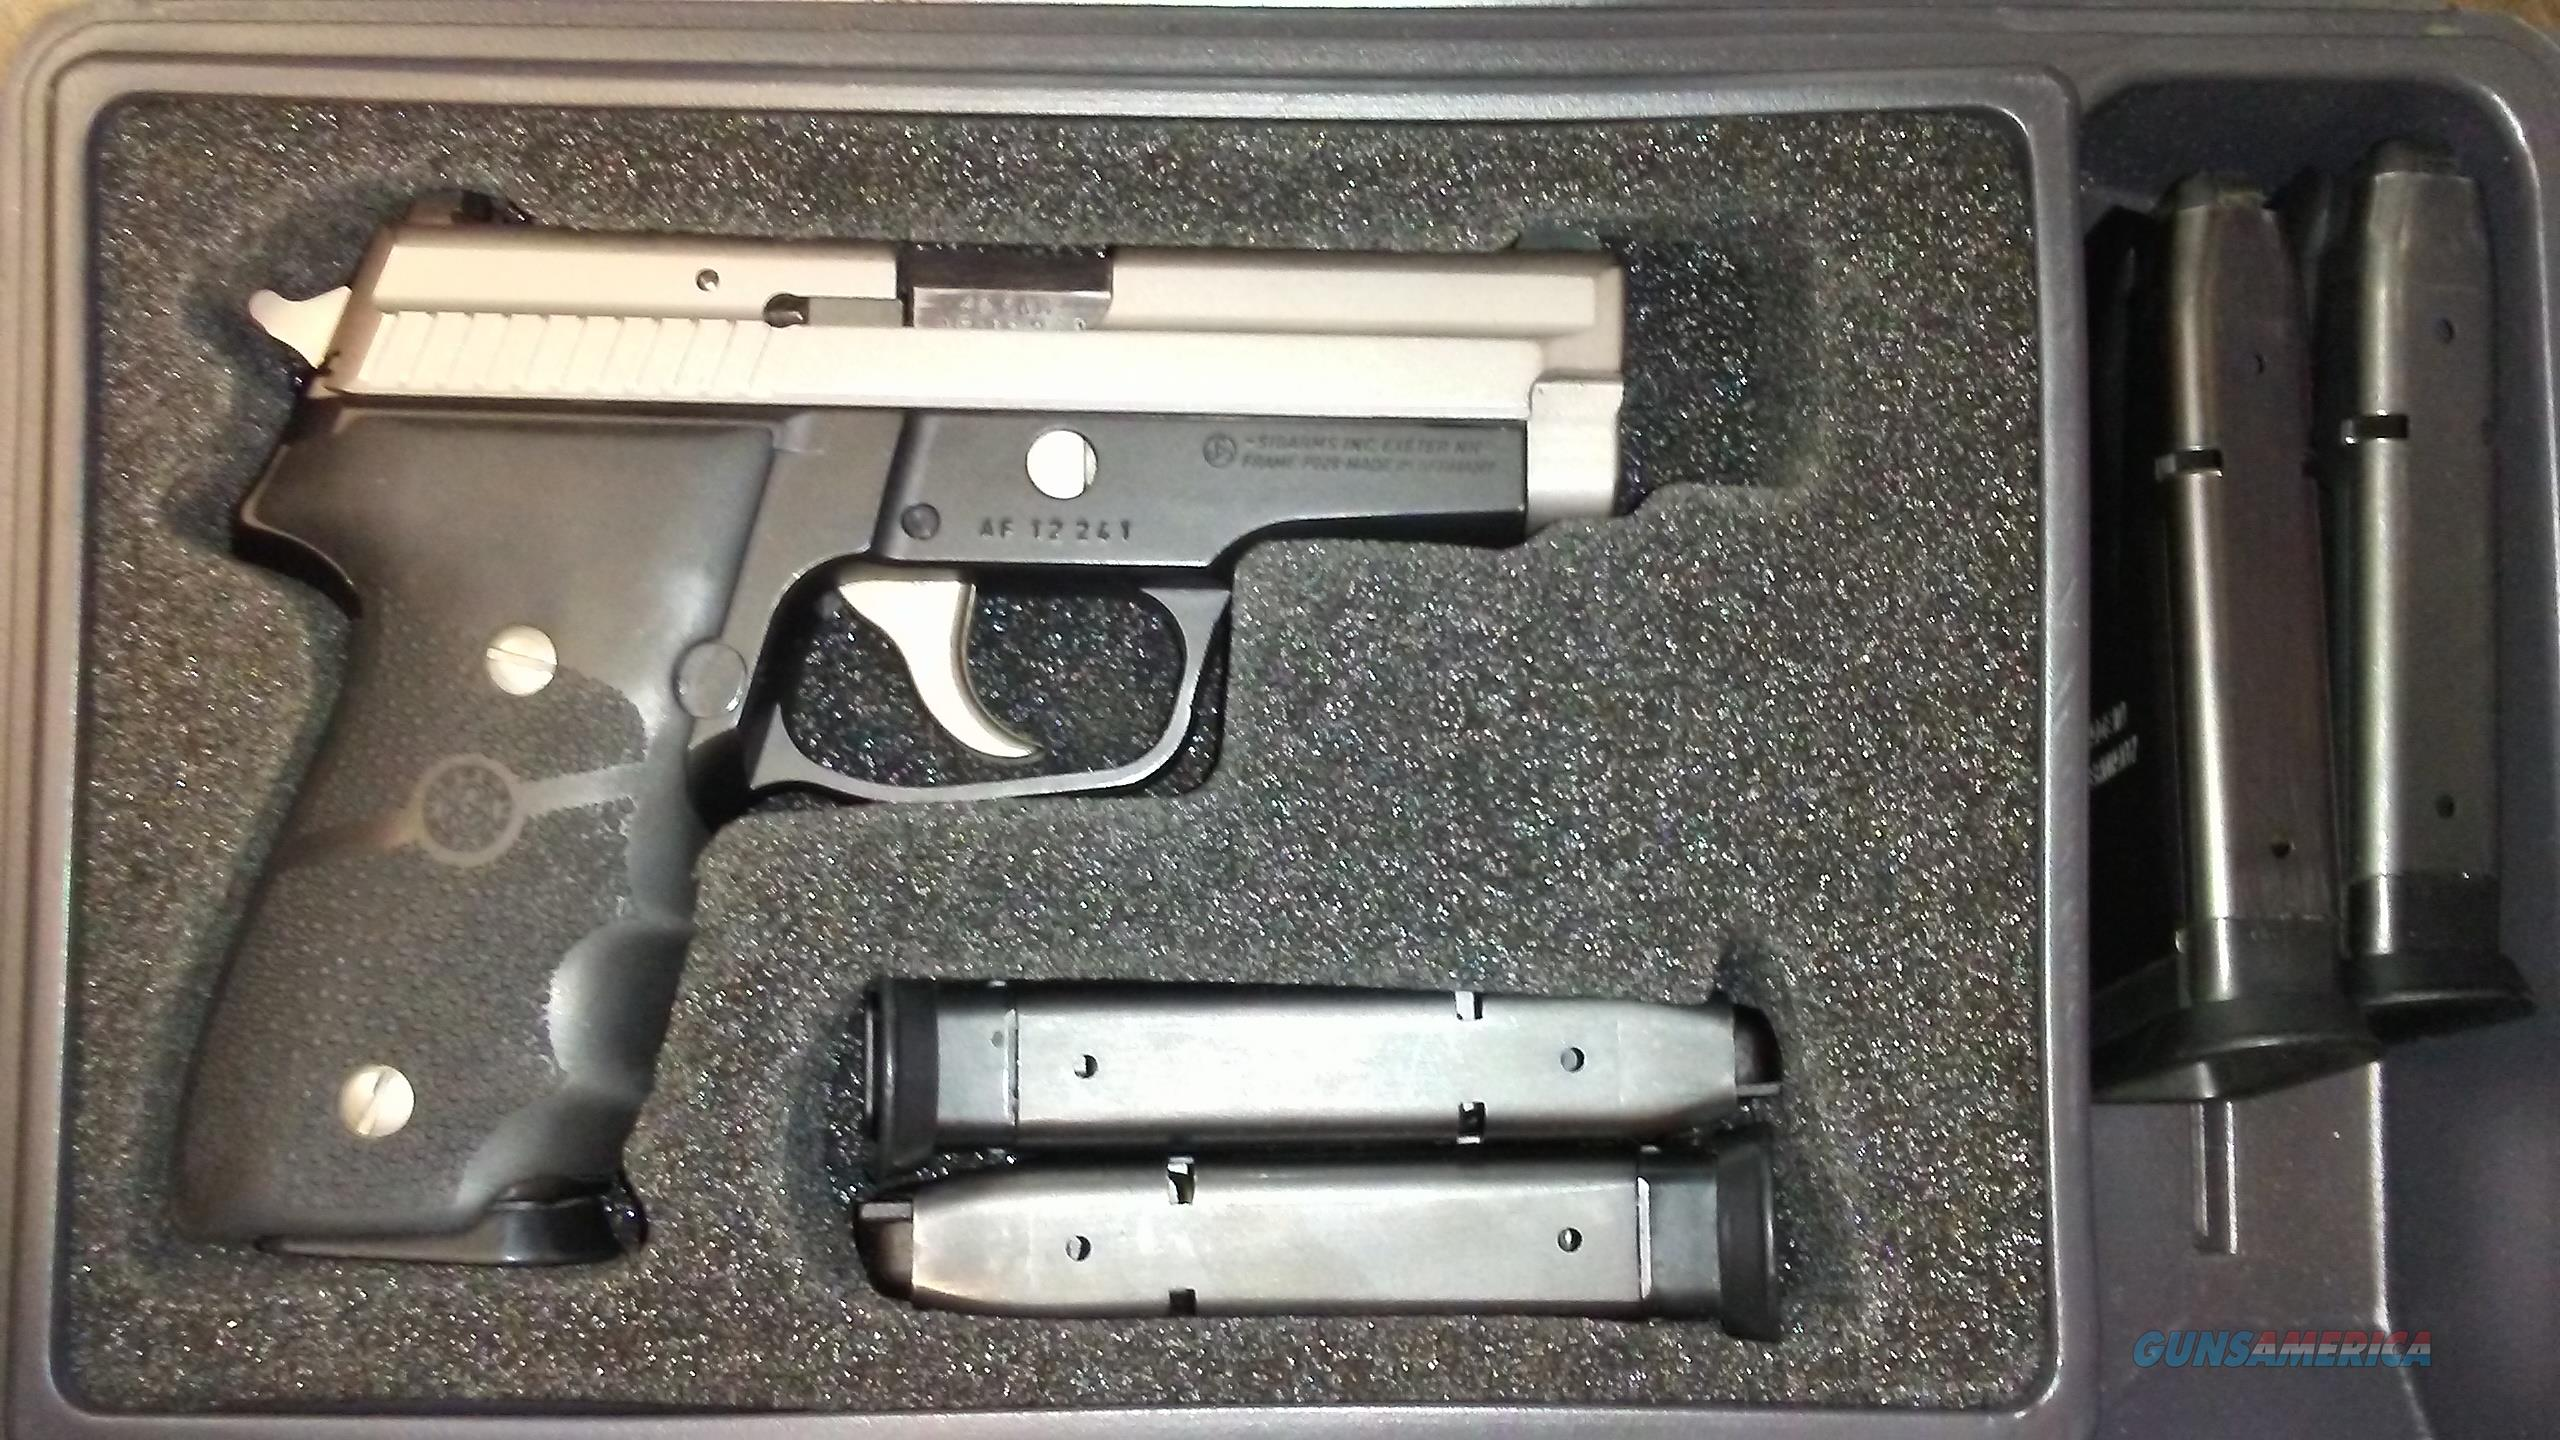 Sig Sauer P229 Stainless 40S&W  Guns > Pistols > Sig - Sauer/Sigarms Pistols > P229